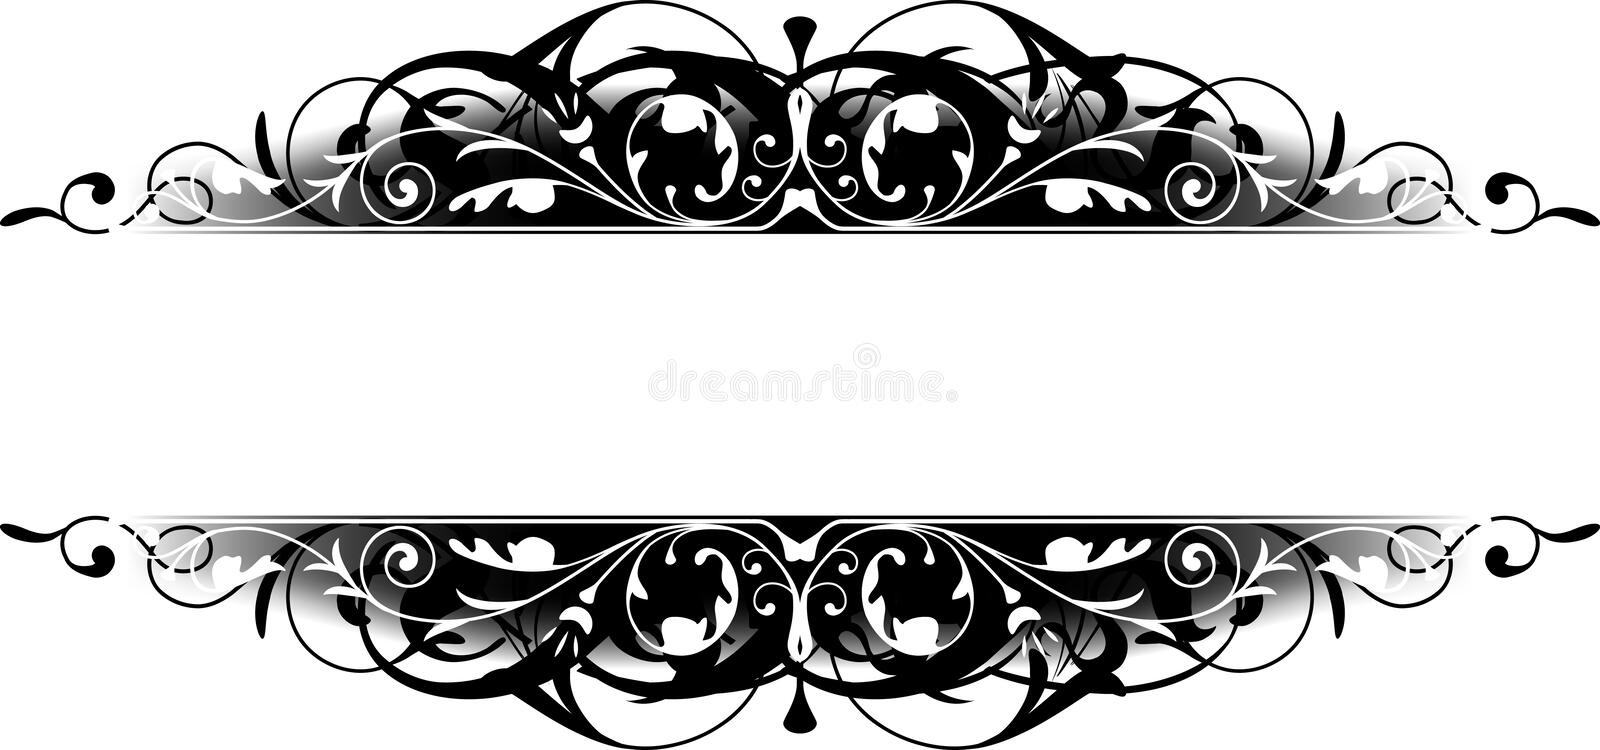 Black Scroll Border stock photo